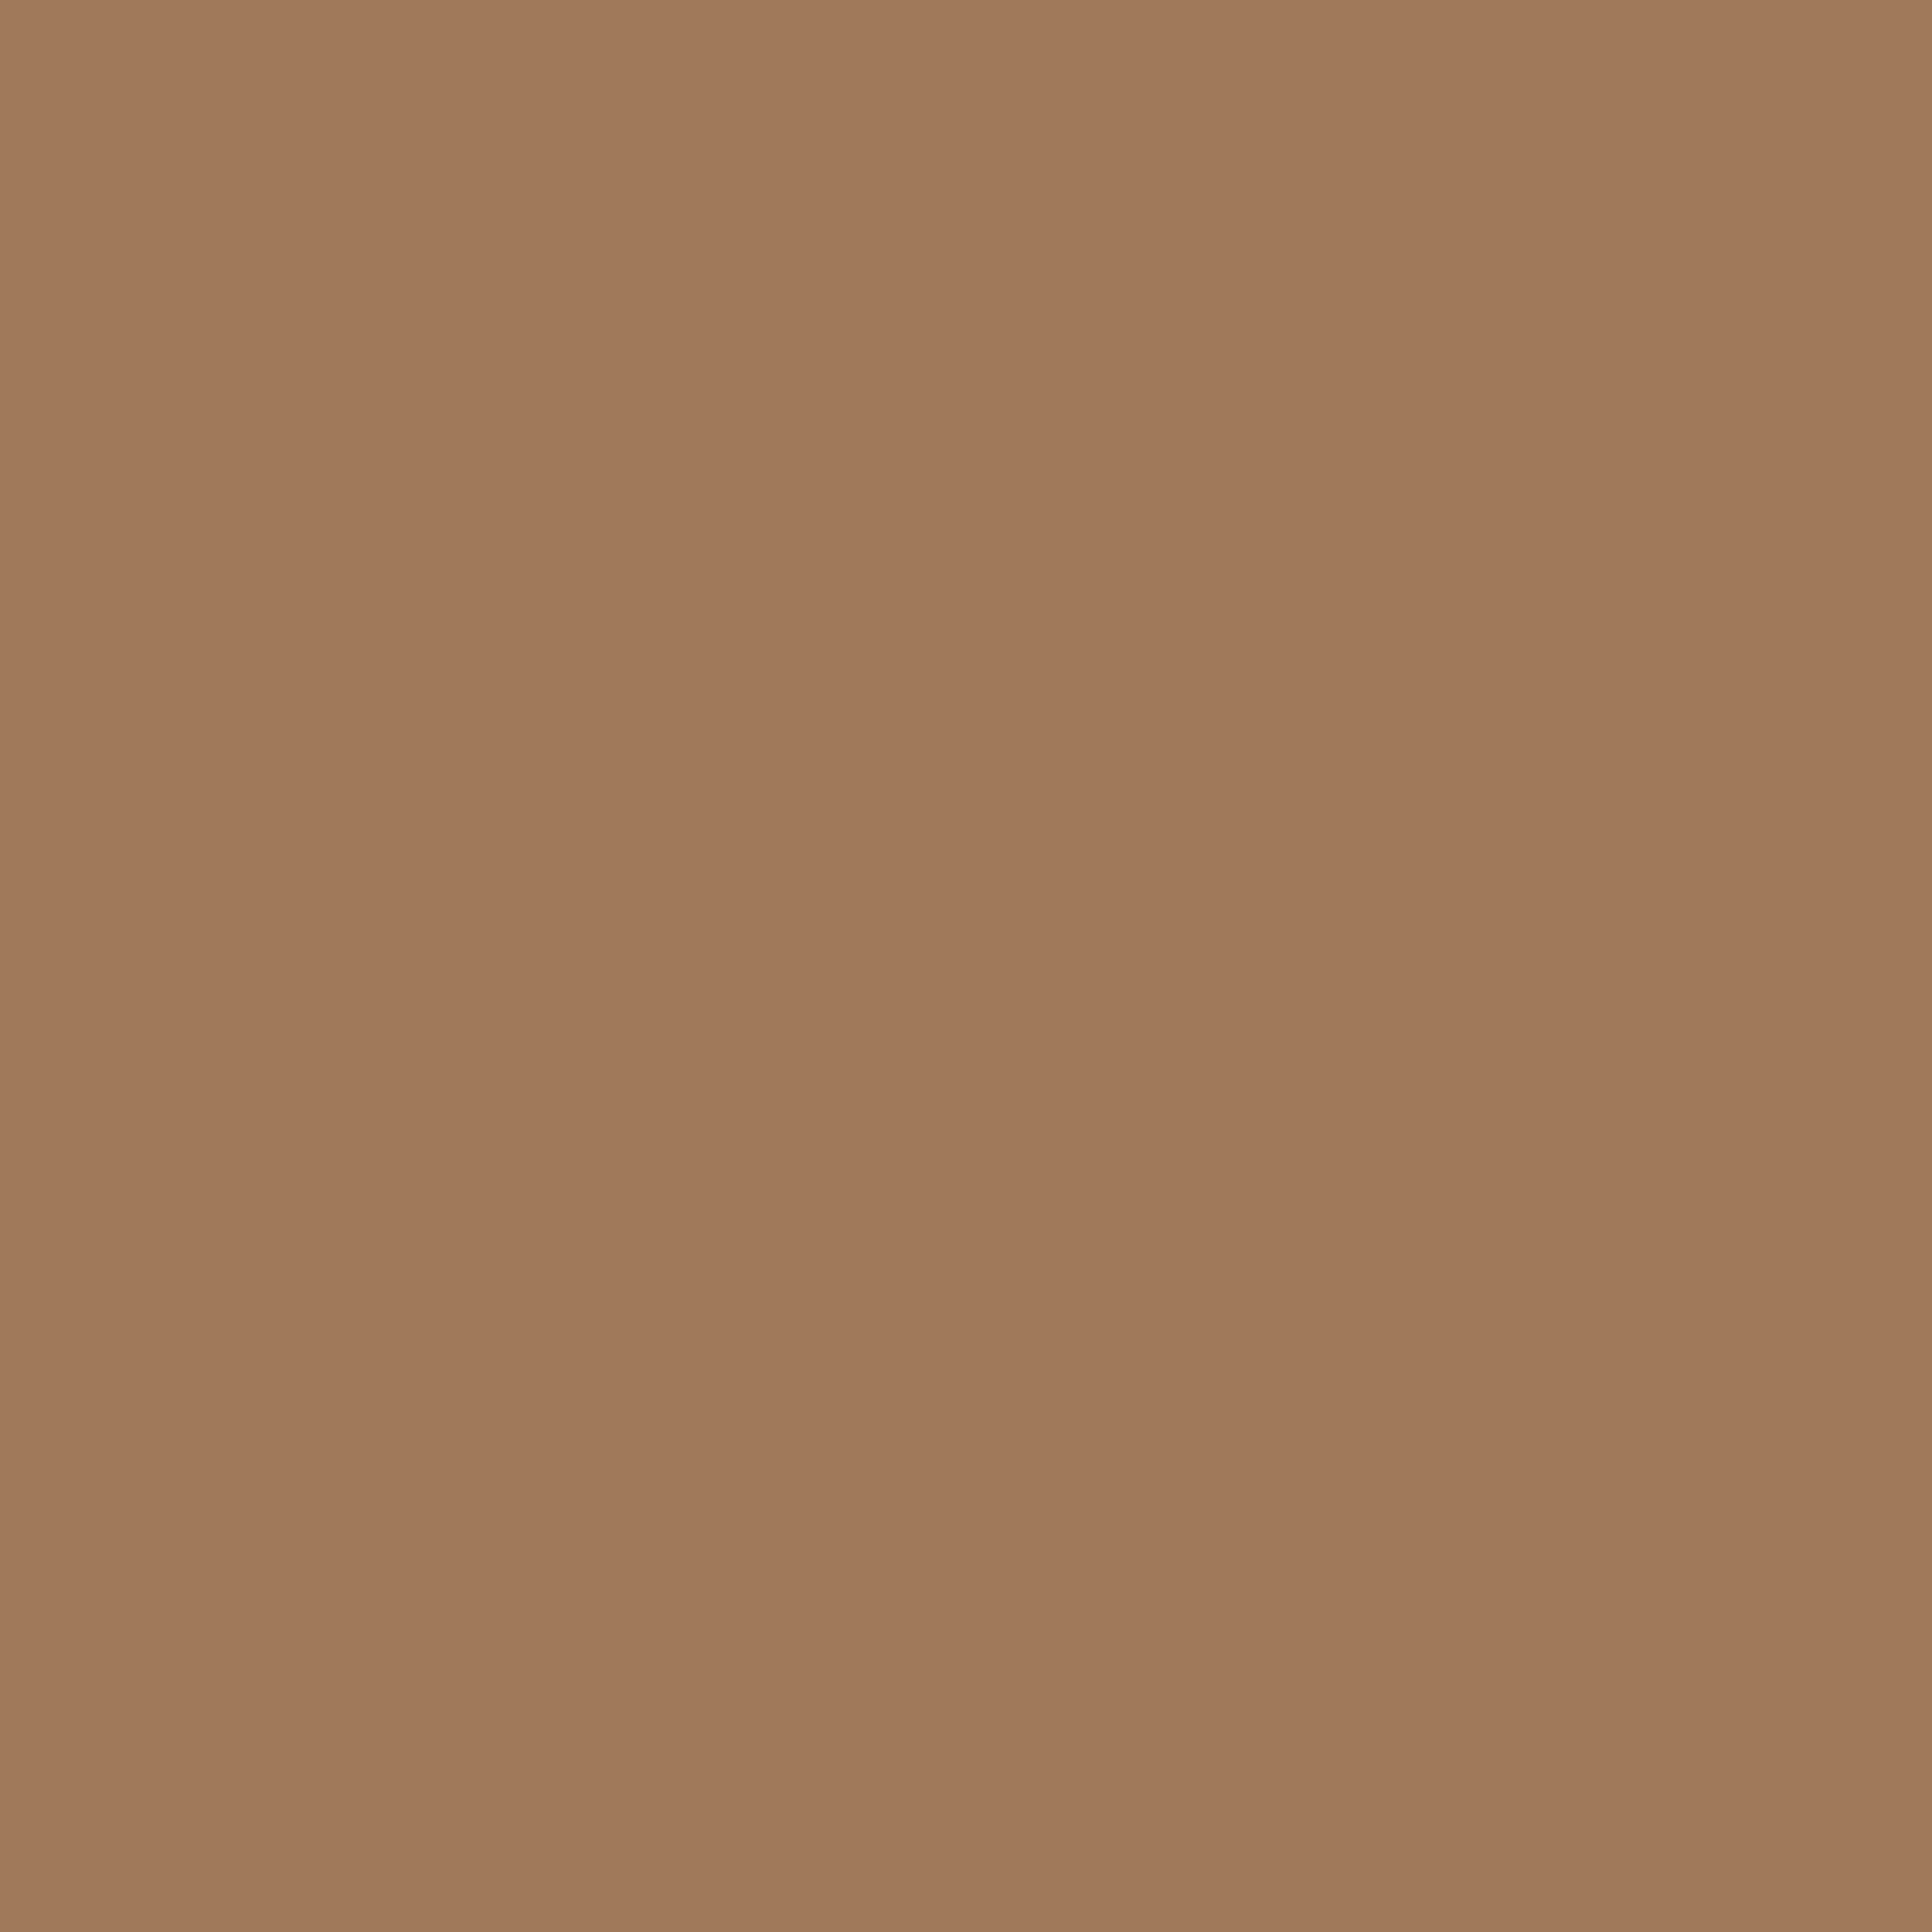 2732x2732 Chamoisee Solid Color Background